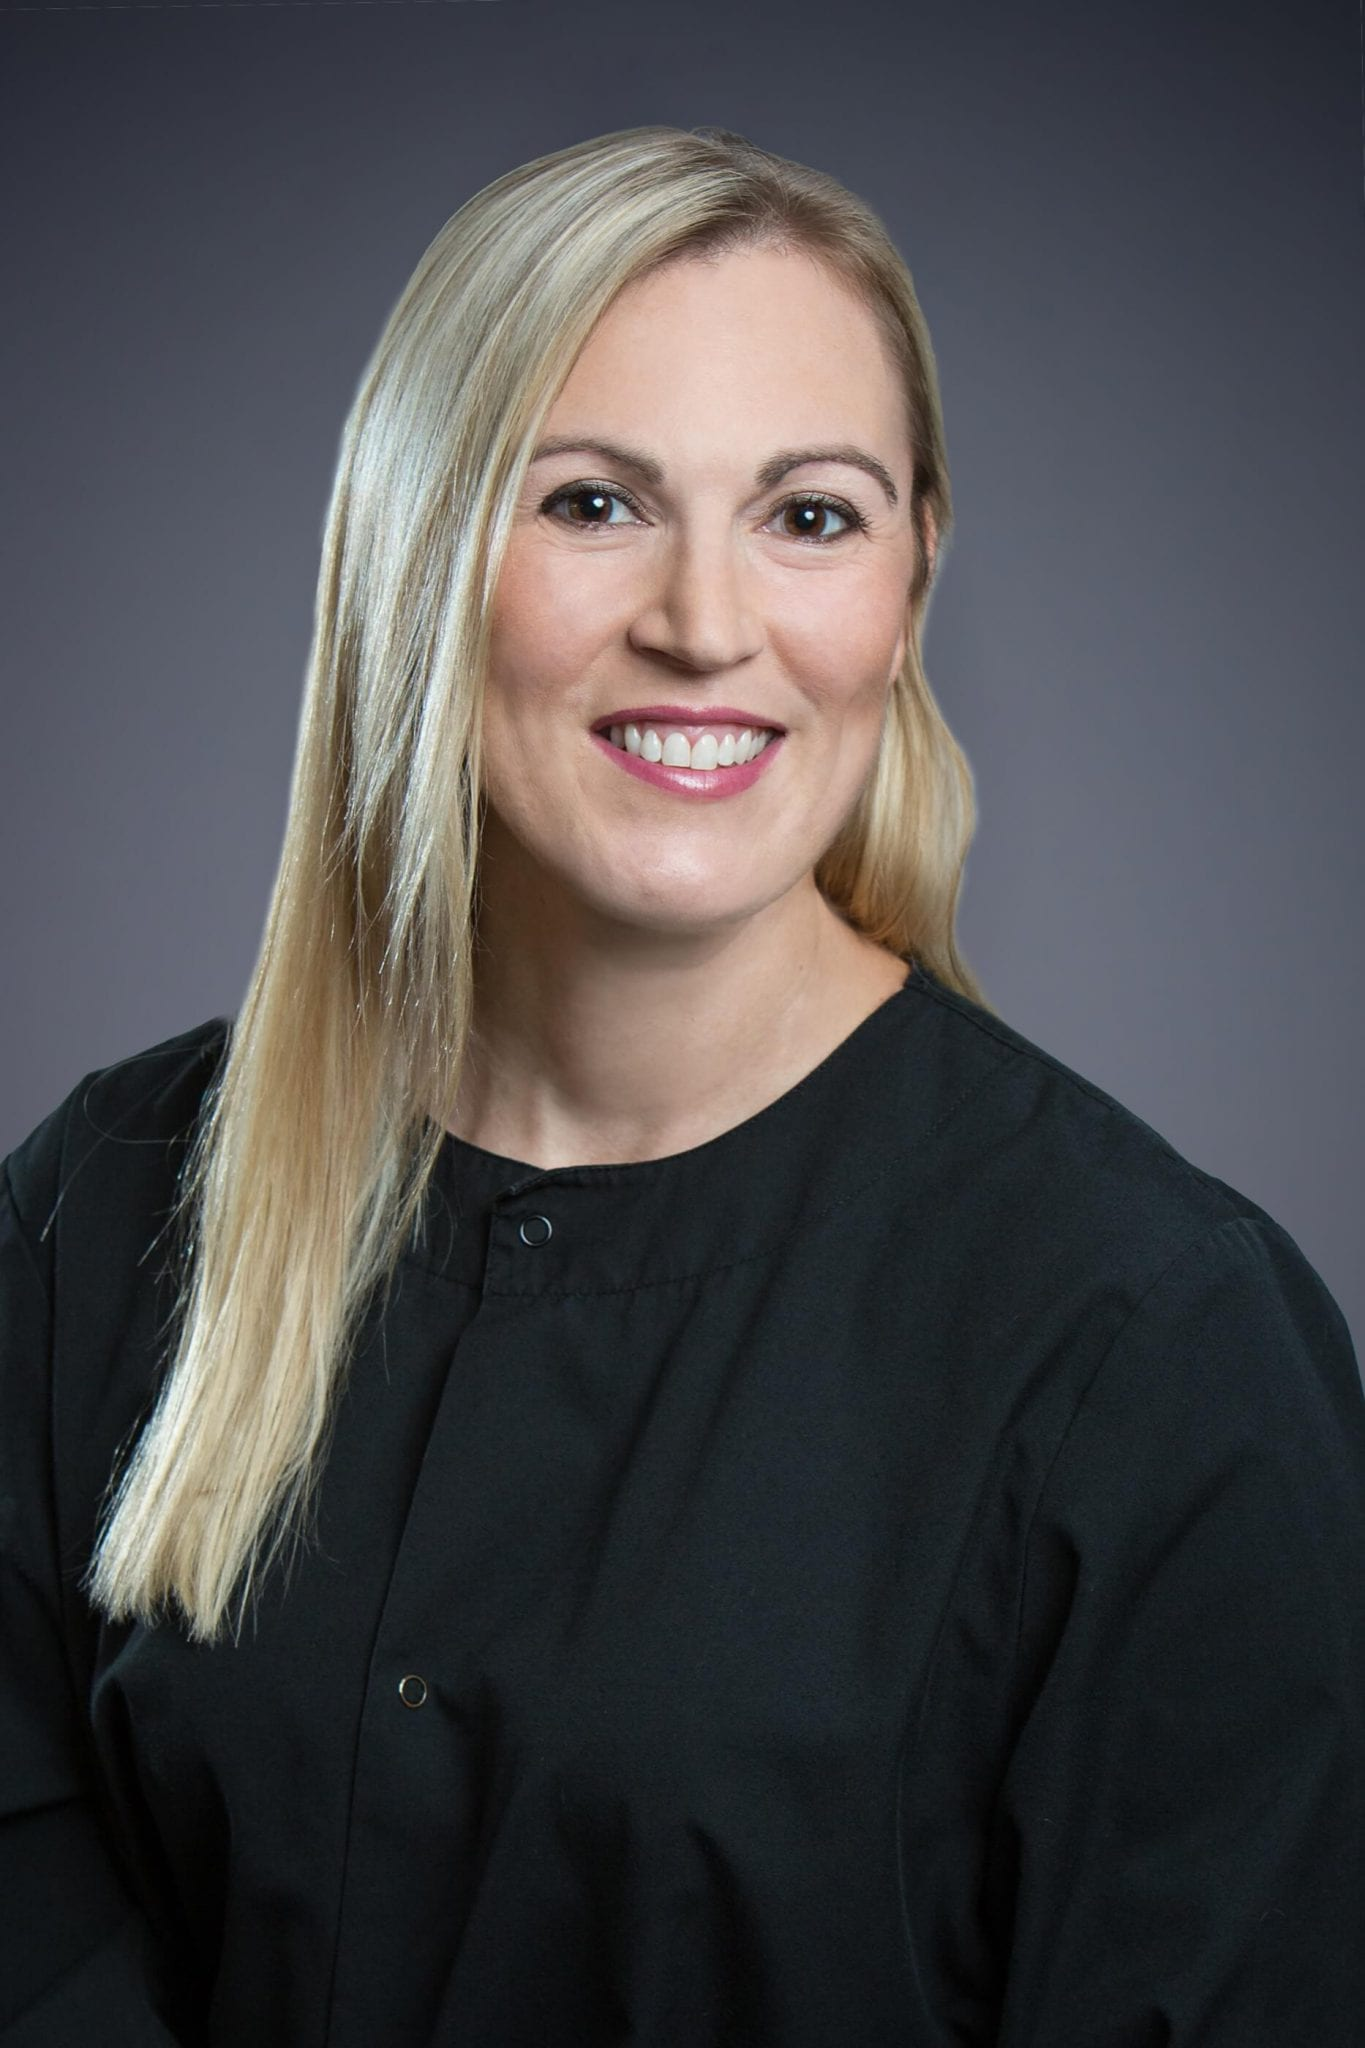 Ruby who is a Hygienist at Birdwell and Guffey Family Dentistry in South Knoxville